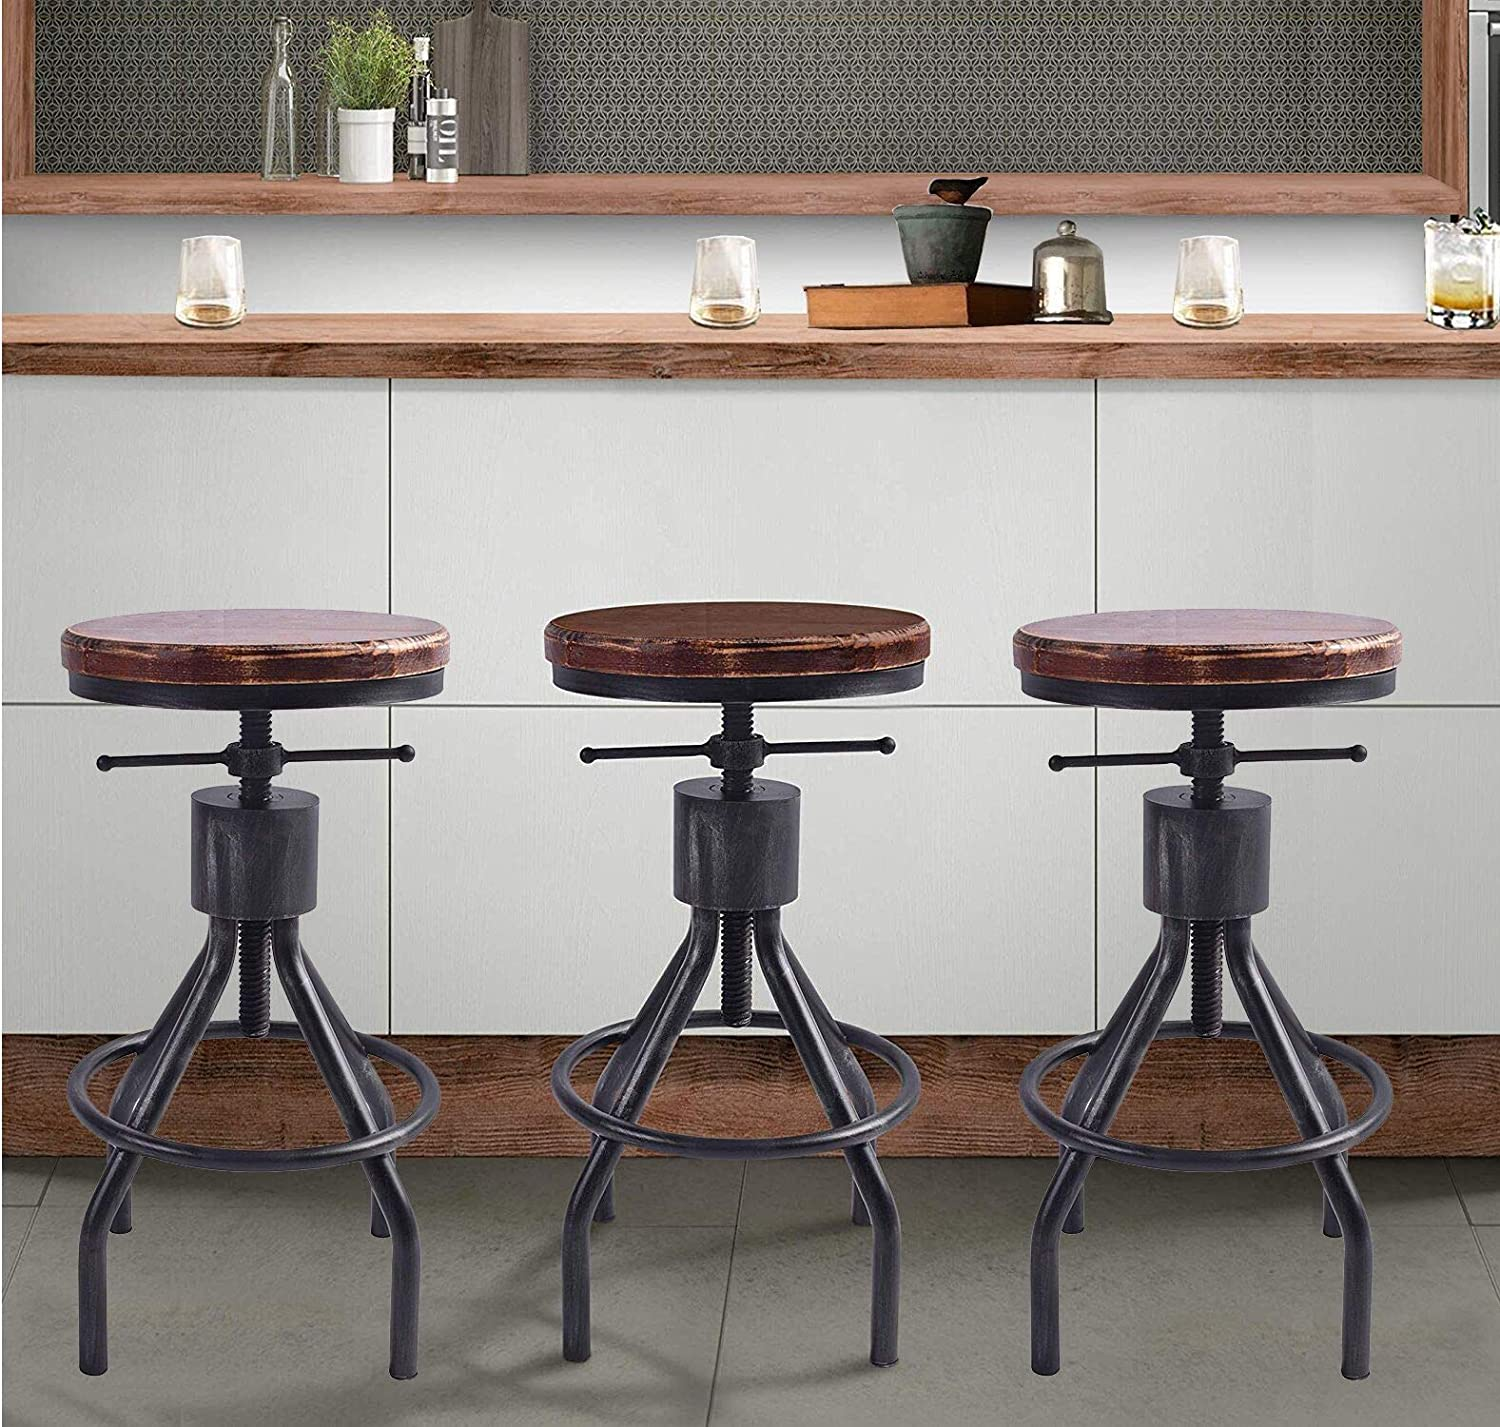 Pleasant 51 Unique Bar Stools That Are Cool Addition To Your Kitchen Andrewgaddart Wooden Chair Designs For Living Room Andrewgaddartcom